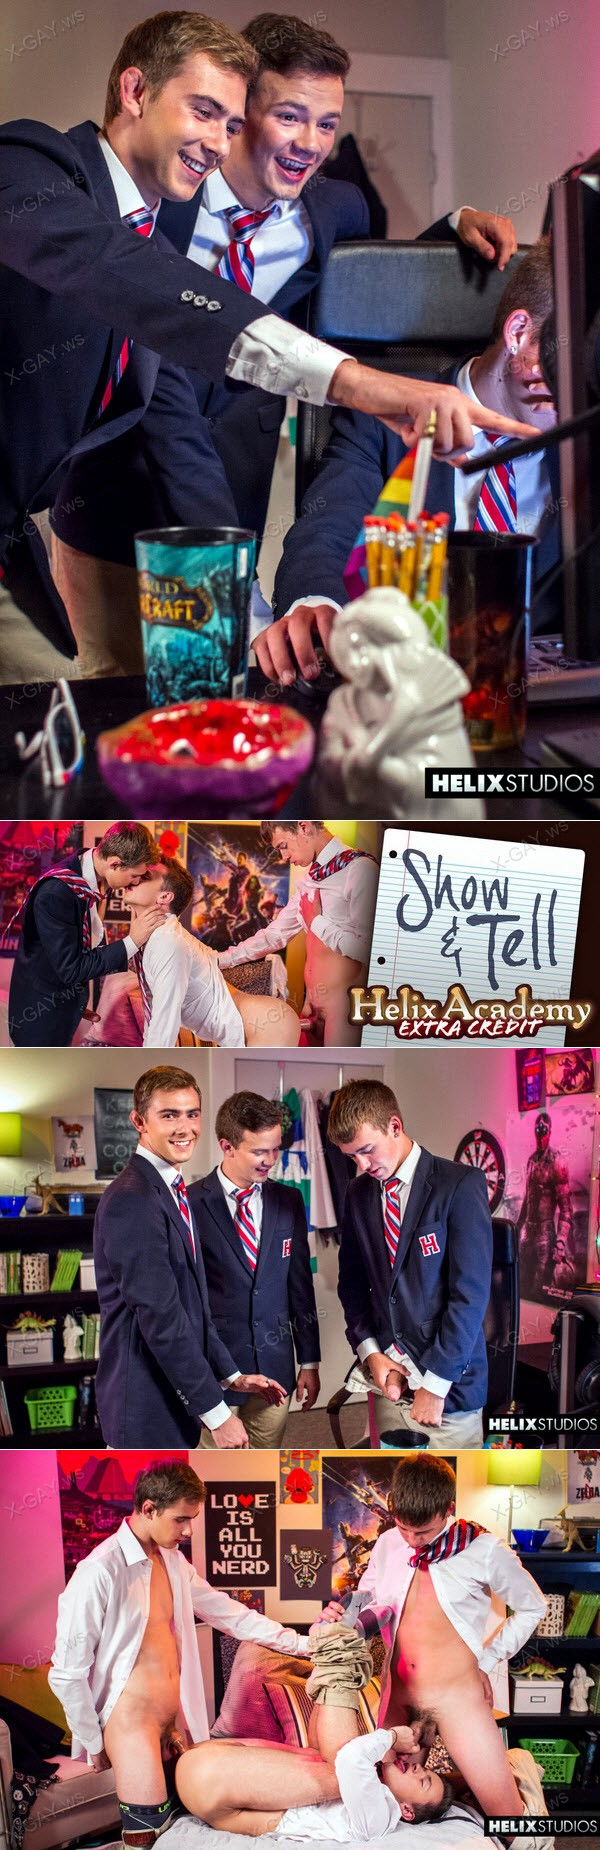 HelixStudios: Helix Academy Extra Credit: Show & Tell (Kody Knight, Troy Ryan, Logan Cross)